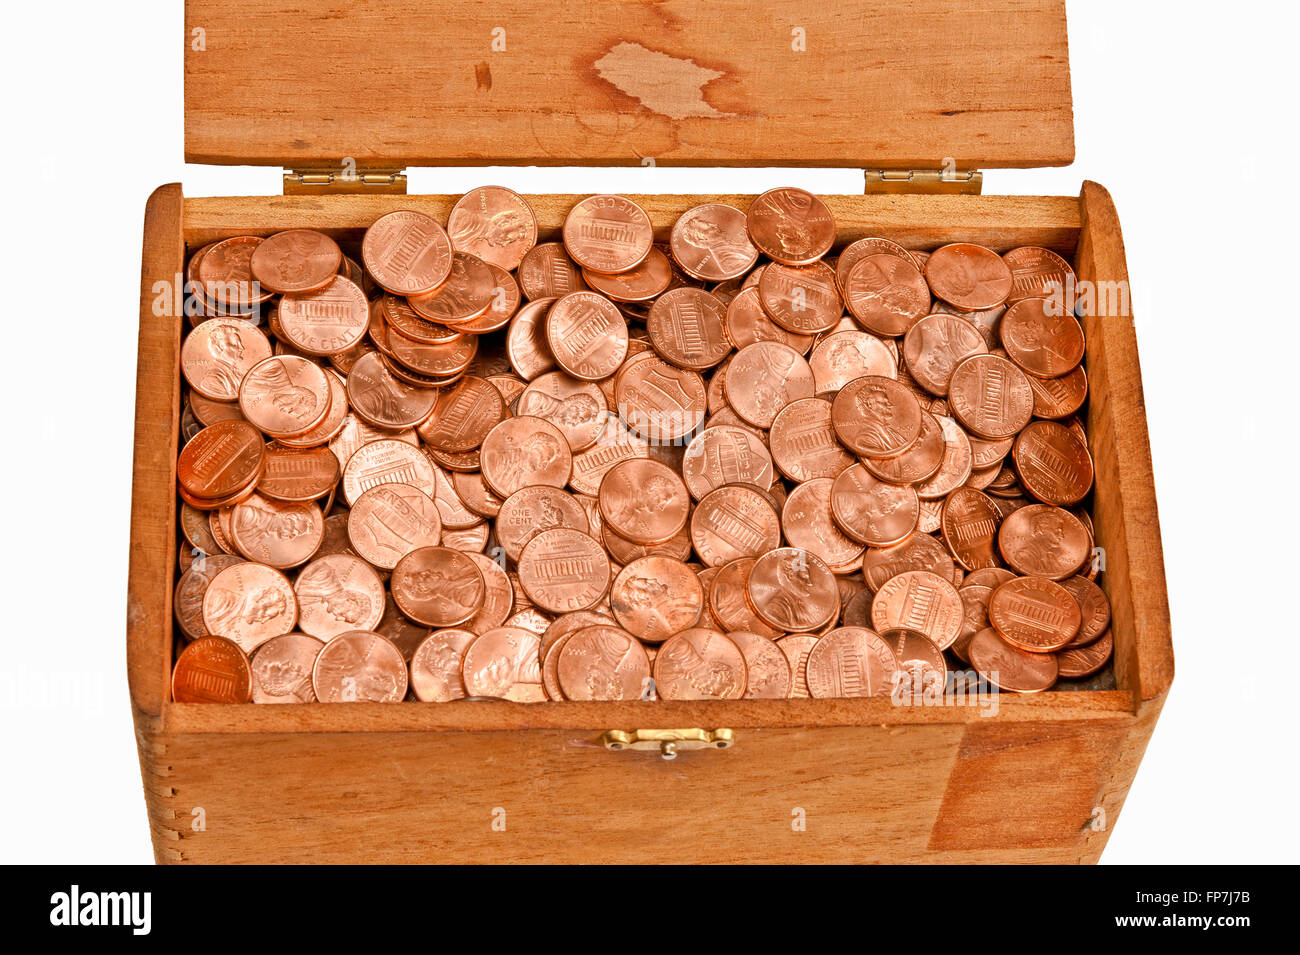 Wooden Box Full of Pennies - Stock Image